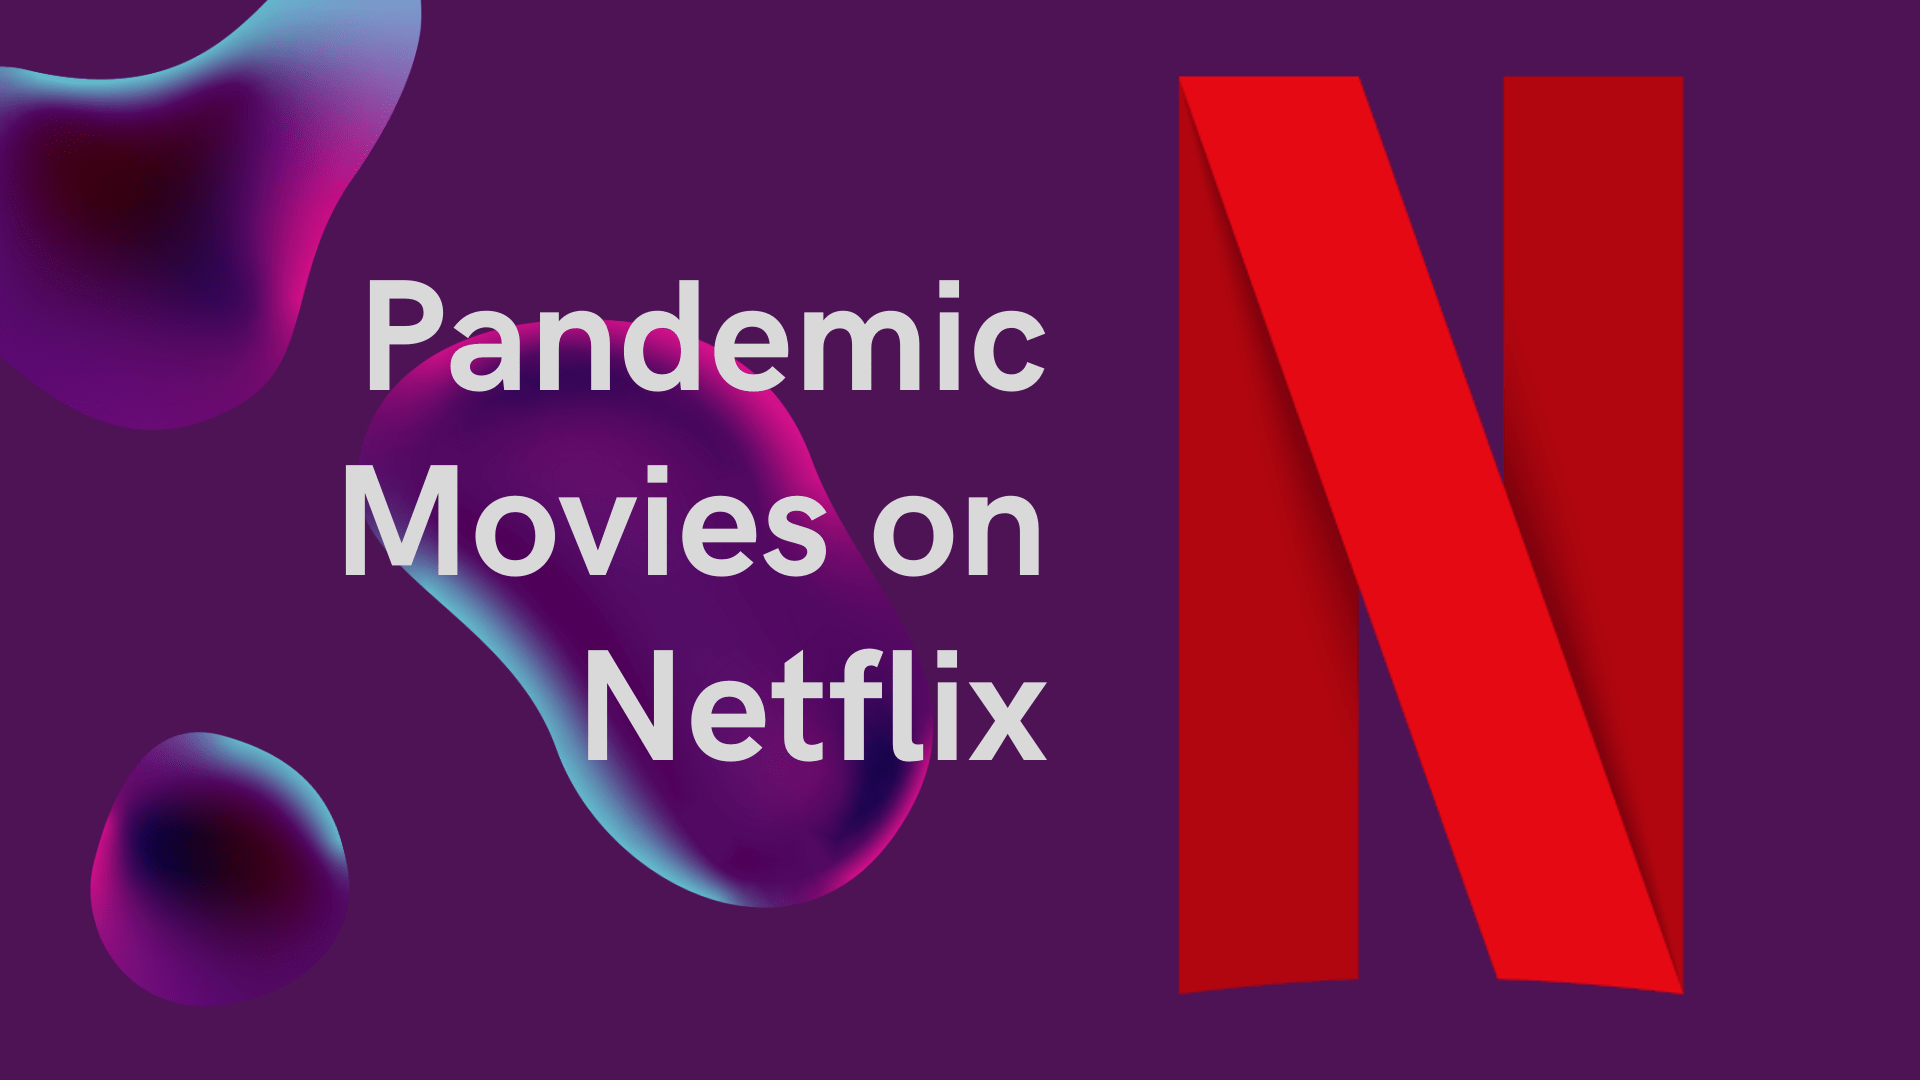 Best Pandemic Movies on Netflix You Should Try